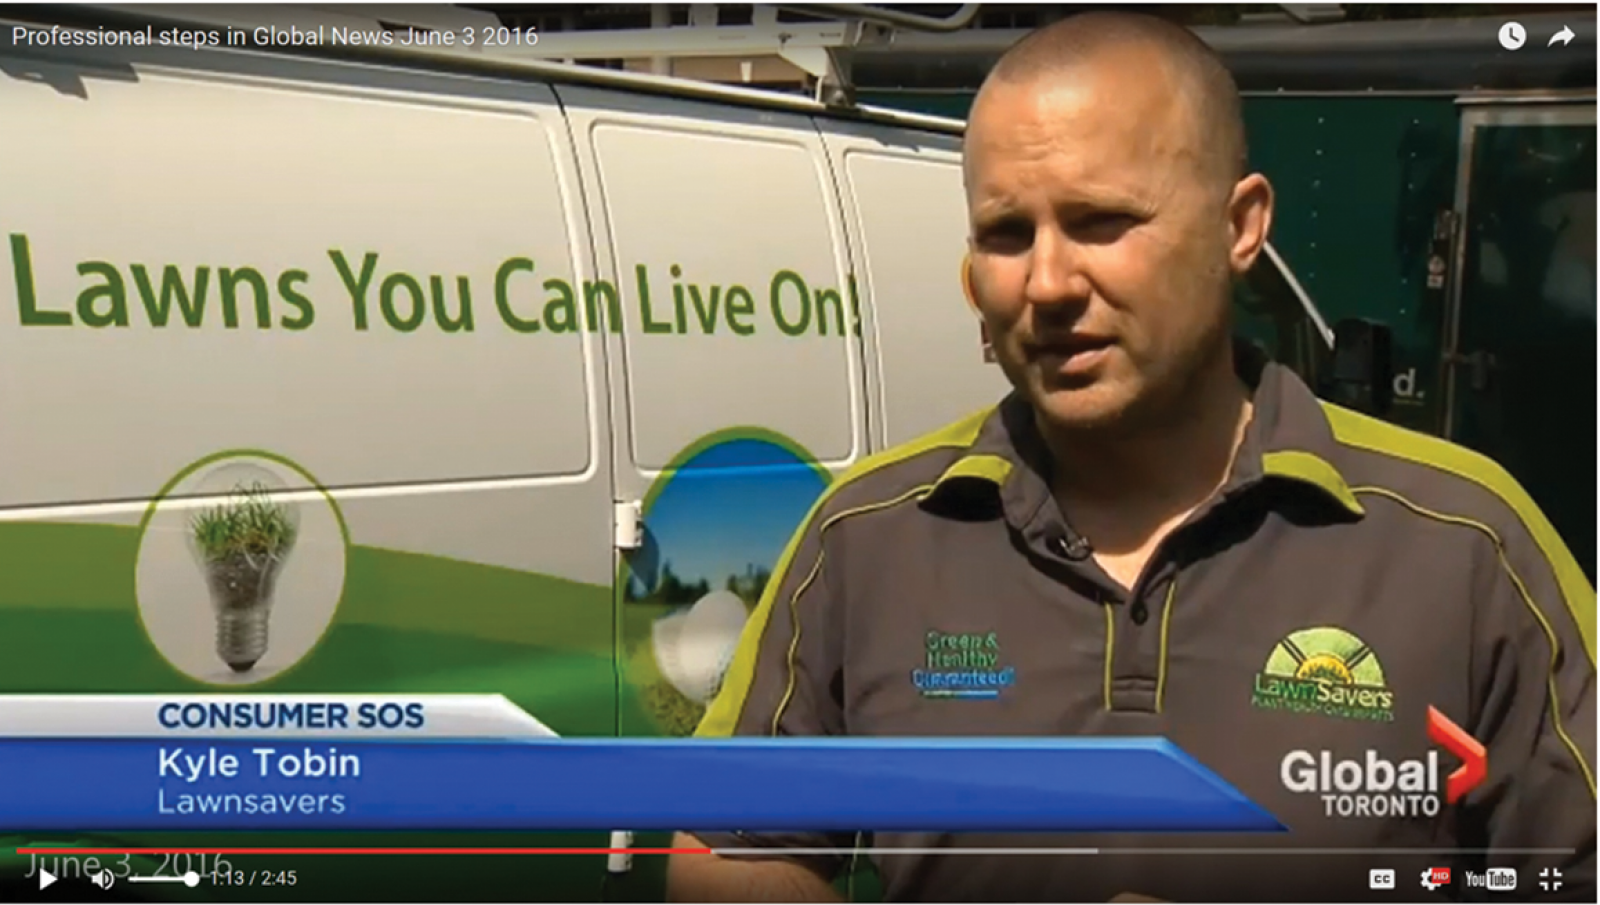 On June 3, 2016, LO member Kyle Tobin of LawnSavers Plant Health Care (pictured above) and Hank Deenen Landscaping appeared on Global News in Toronto when they came to the aid of a homeowner who had paid another contractor to perform some maintenance on her property and got poor results. Tobin saw the story on Twitter and says he immediately wanted to respond becasue the situation made the industry look bad.